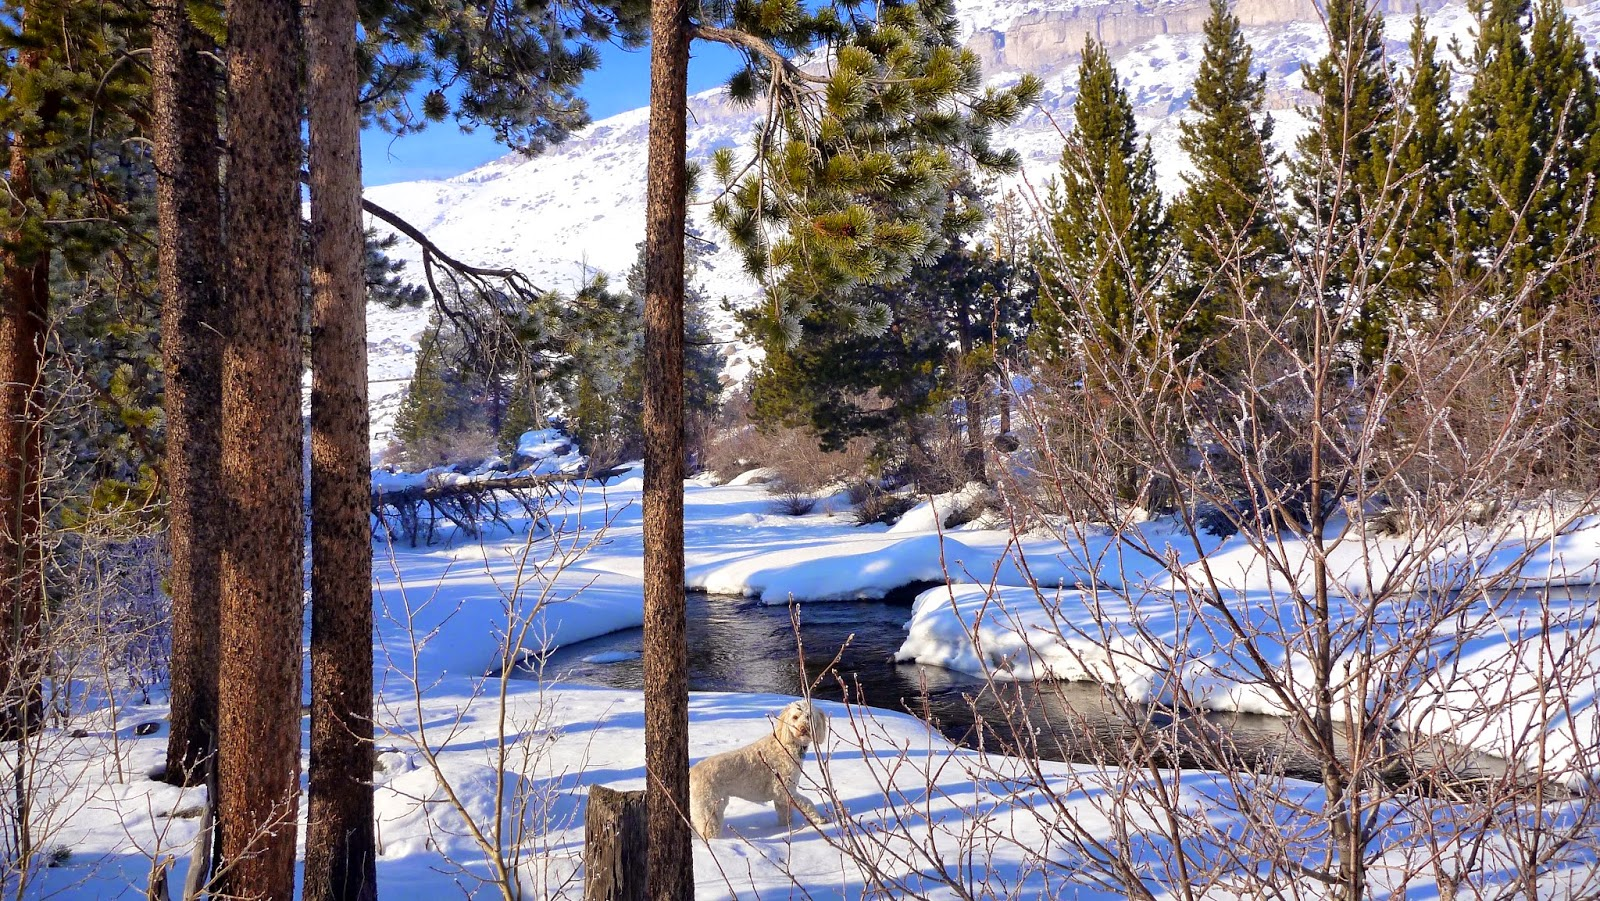 browning base camp: February 2014